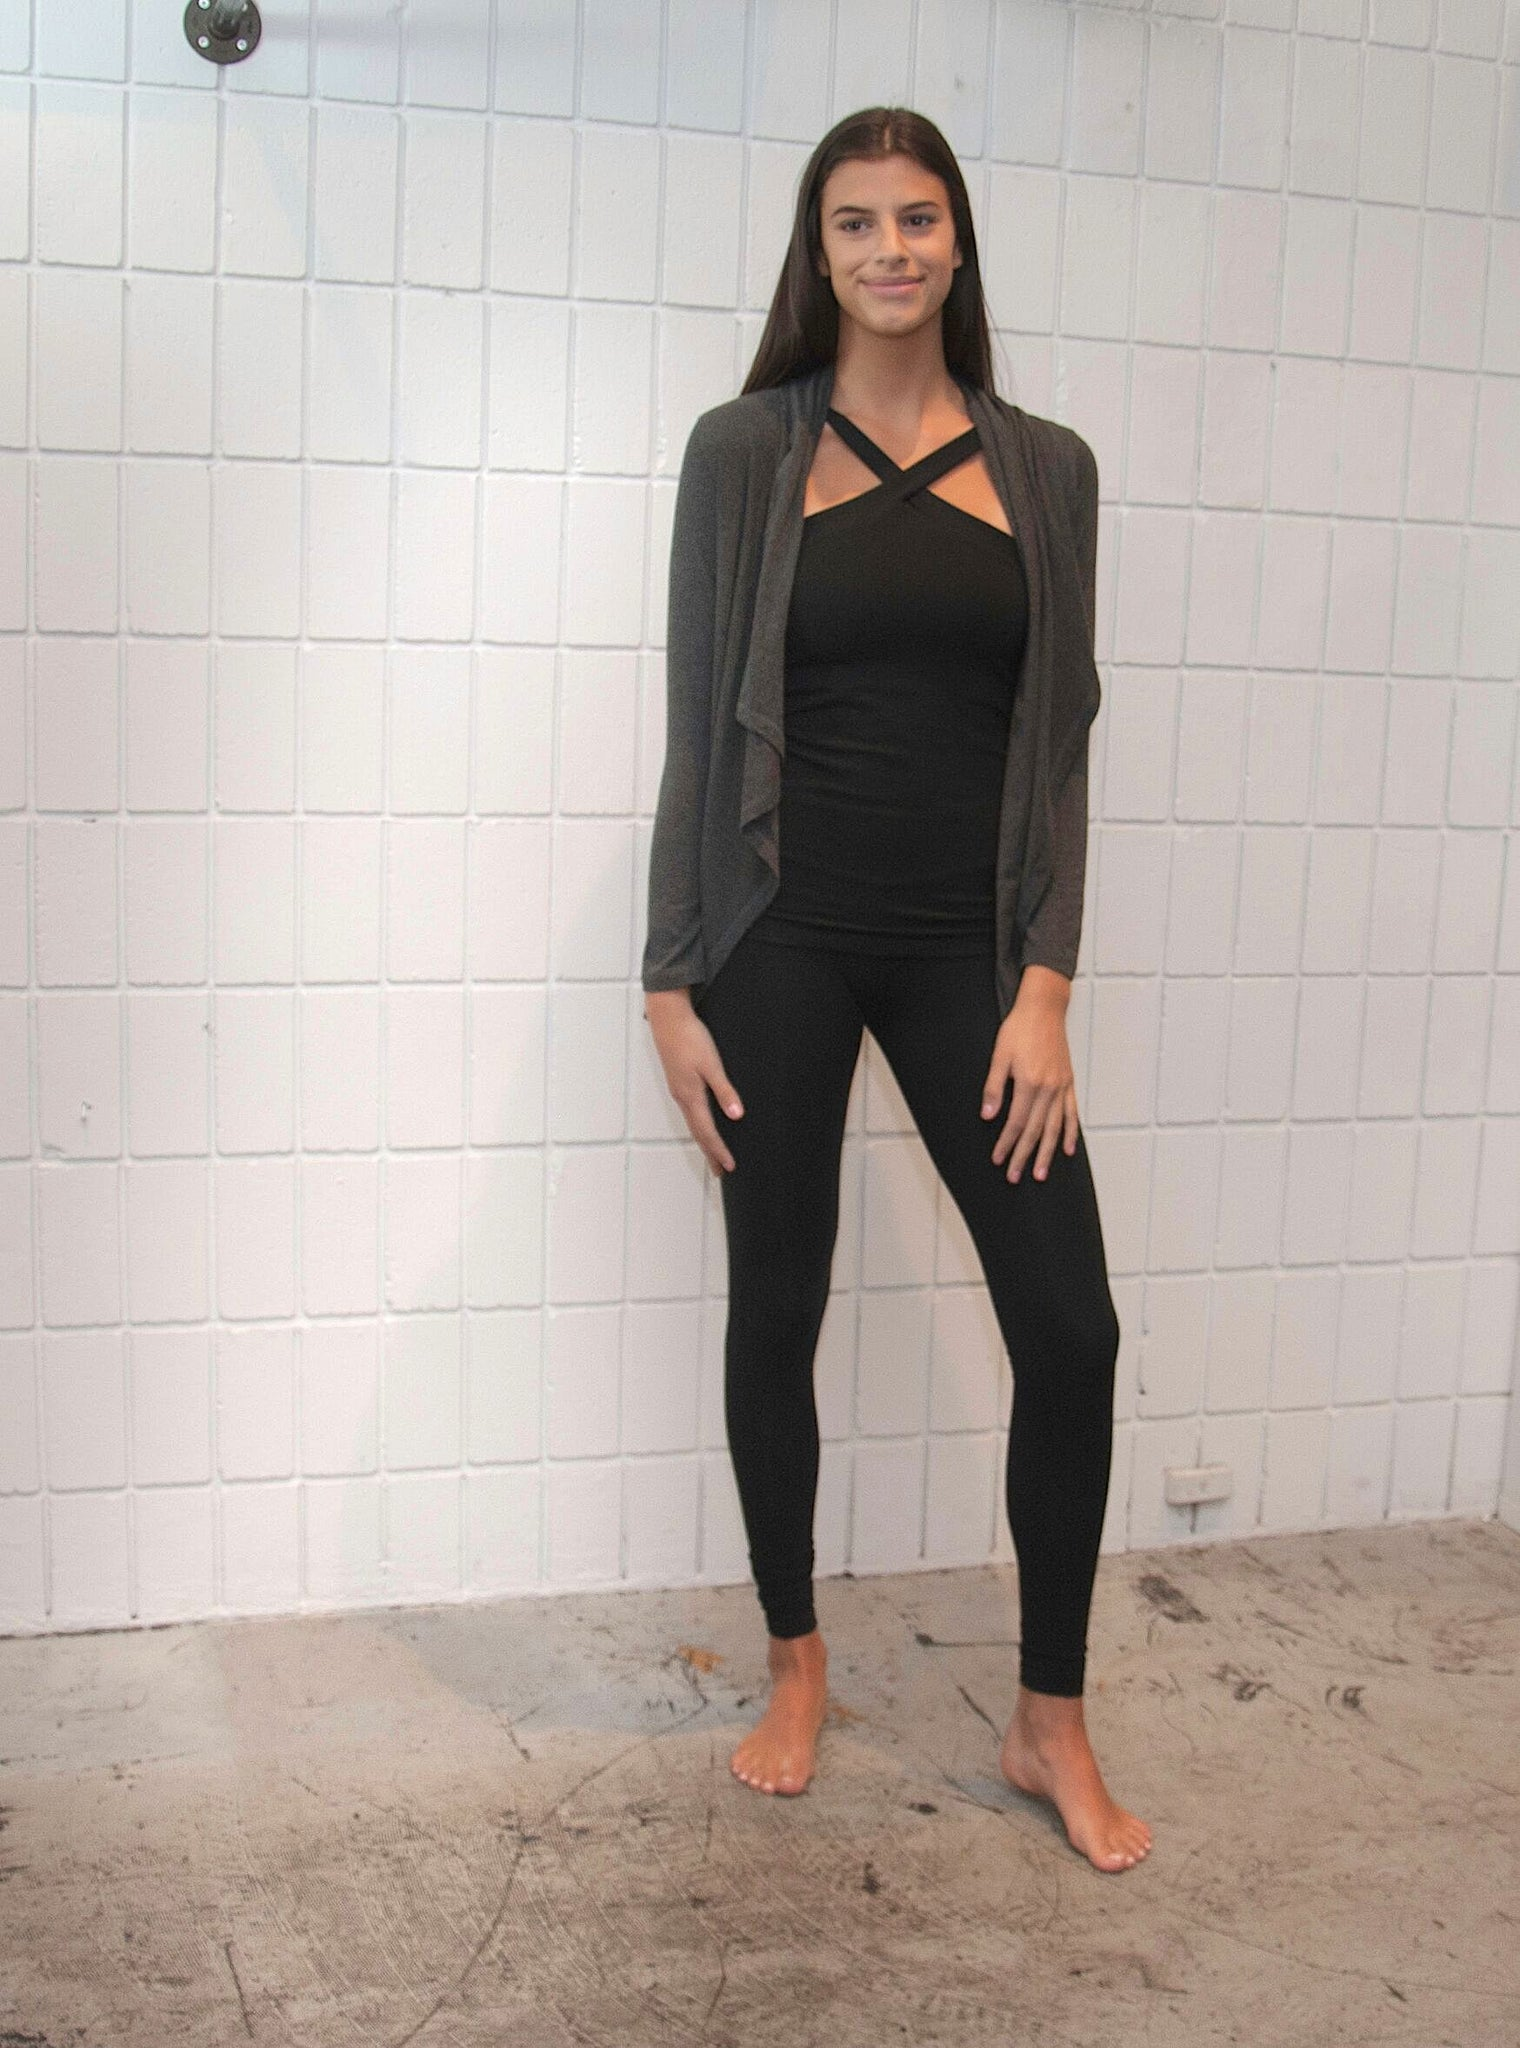 Movement Global modular sustainable fashion yoga wear that goes to the boardroom style. Made in Canada